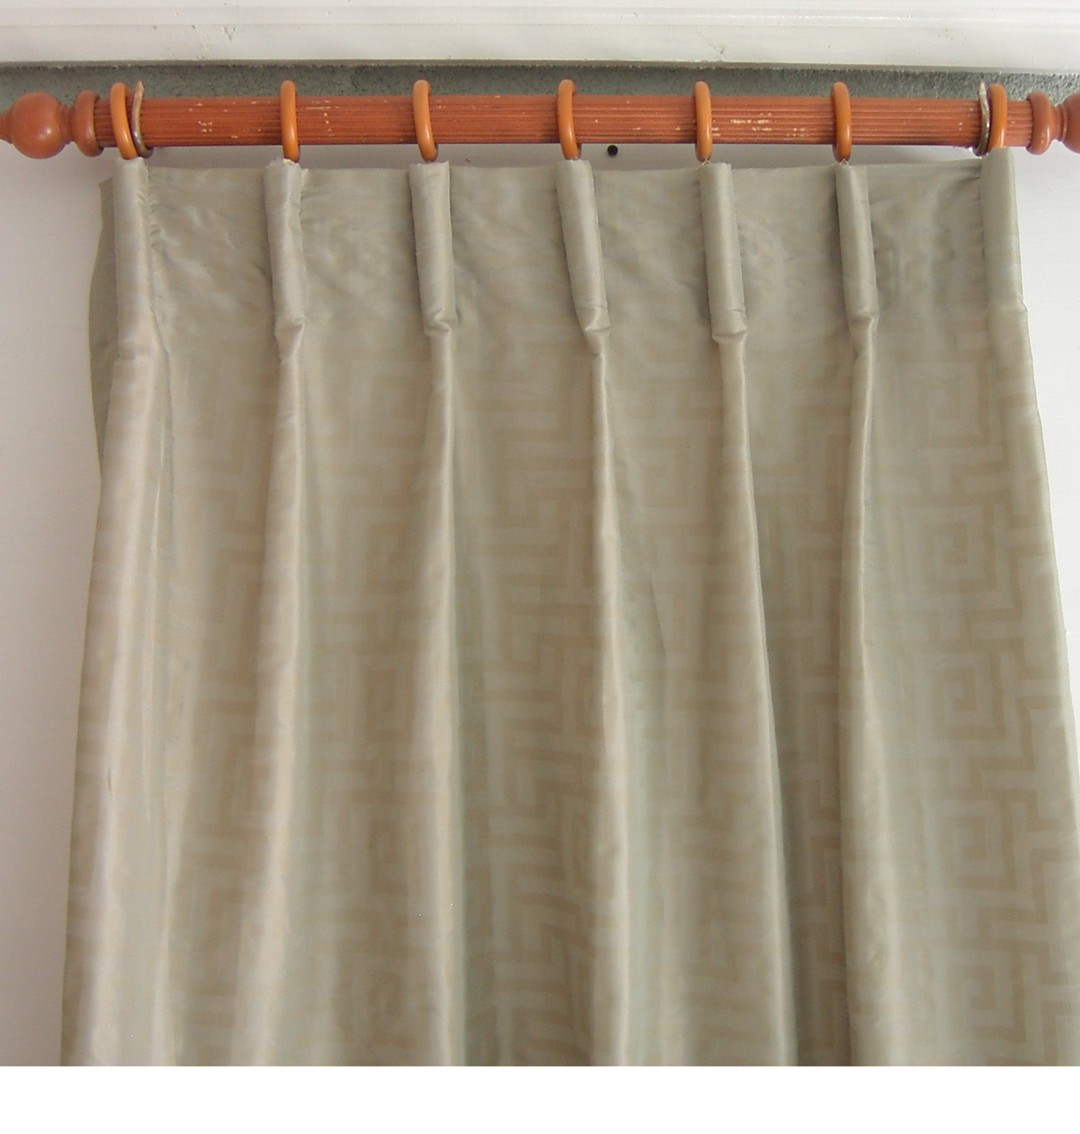 Flat Roman Shades With Curtains